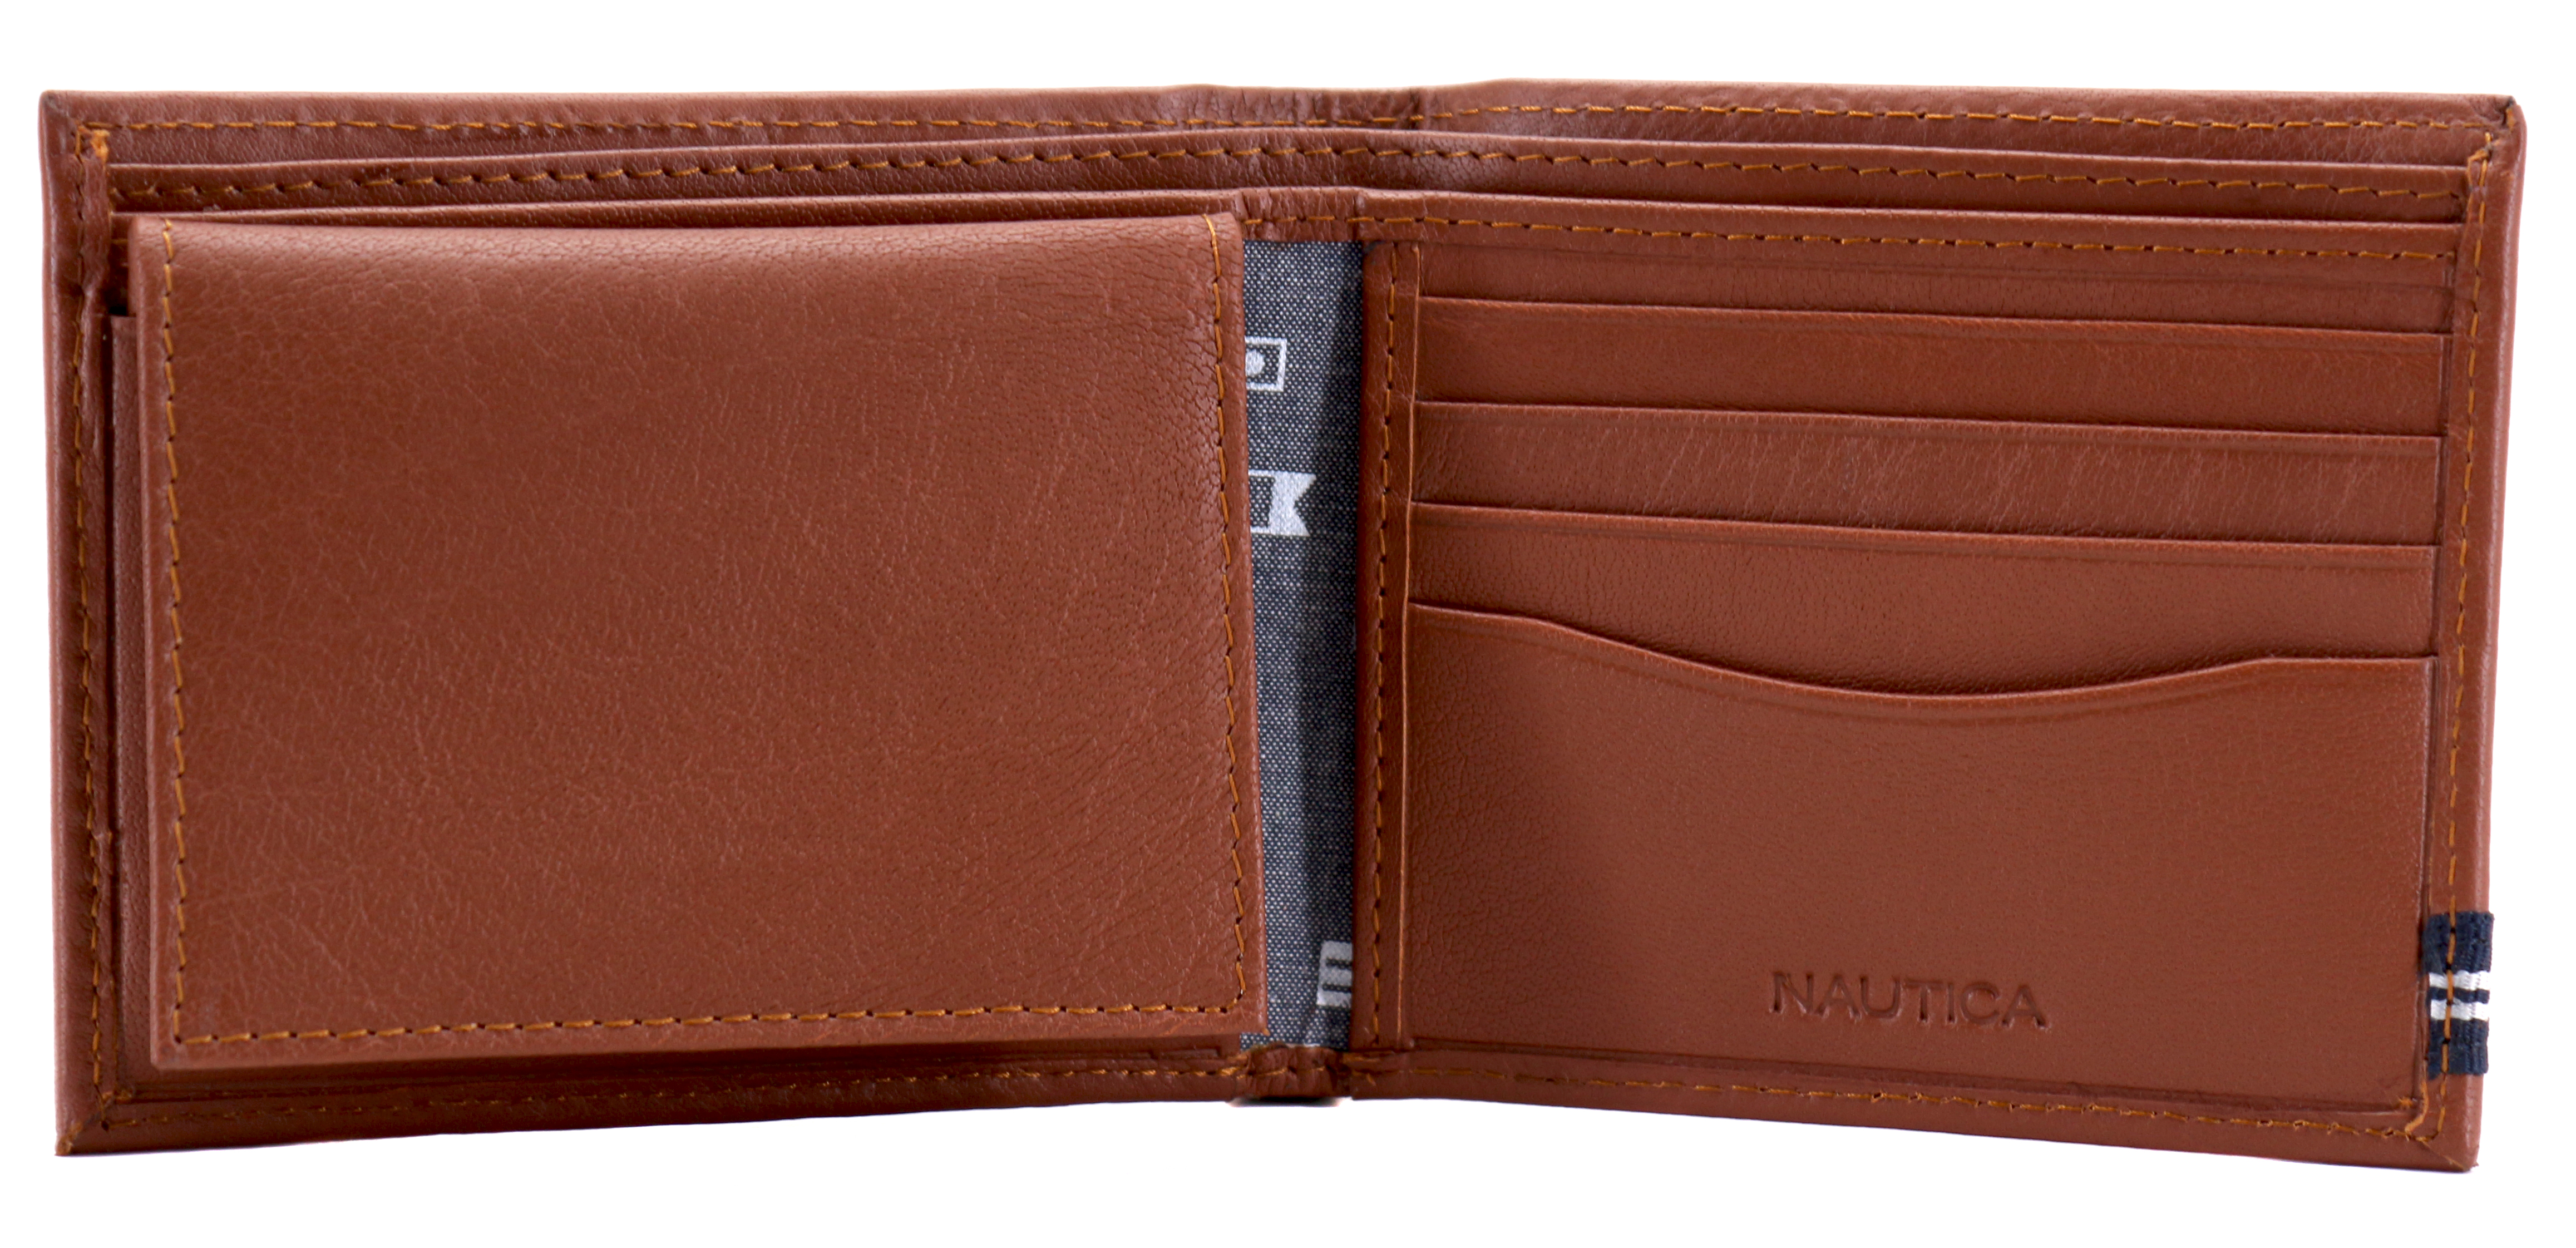 Nautica-Men-039-s-Genuine-Leather-Credit-Card-ID-Double-Billfold-Passcase-Wallet thumbnail 26